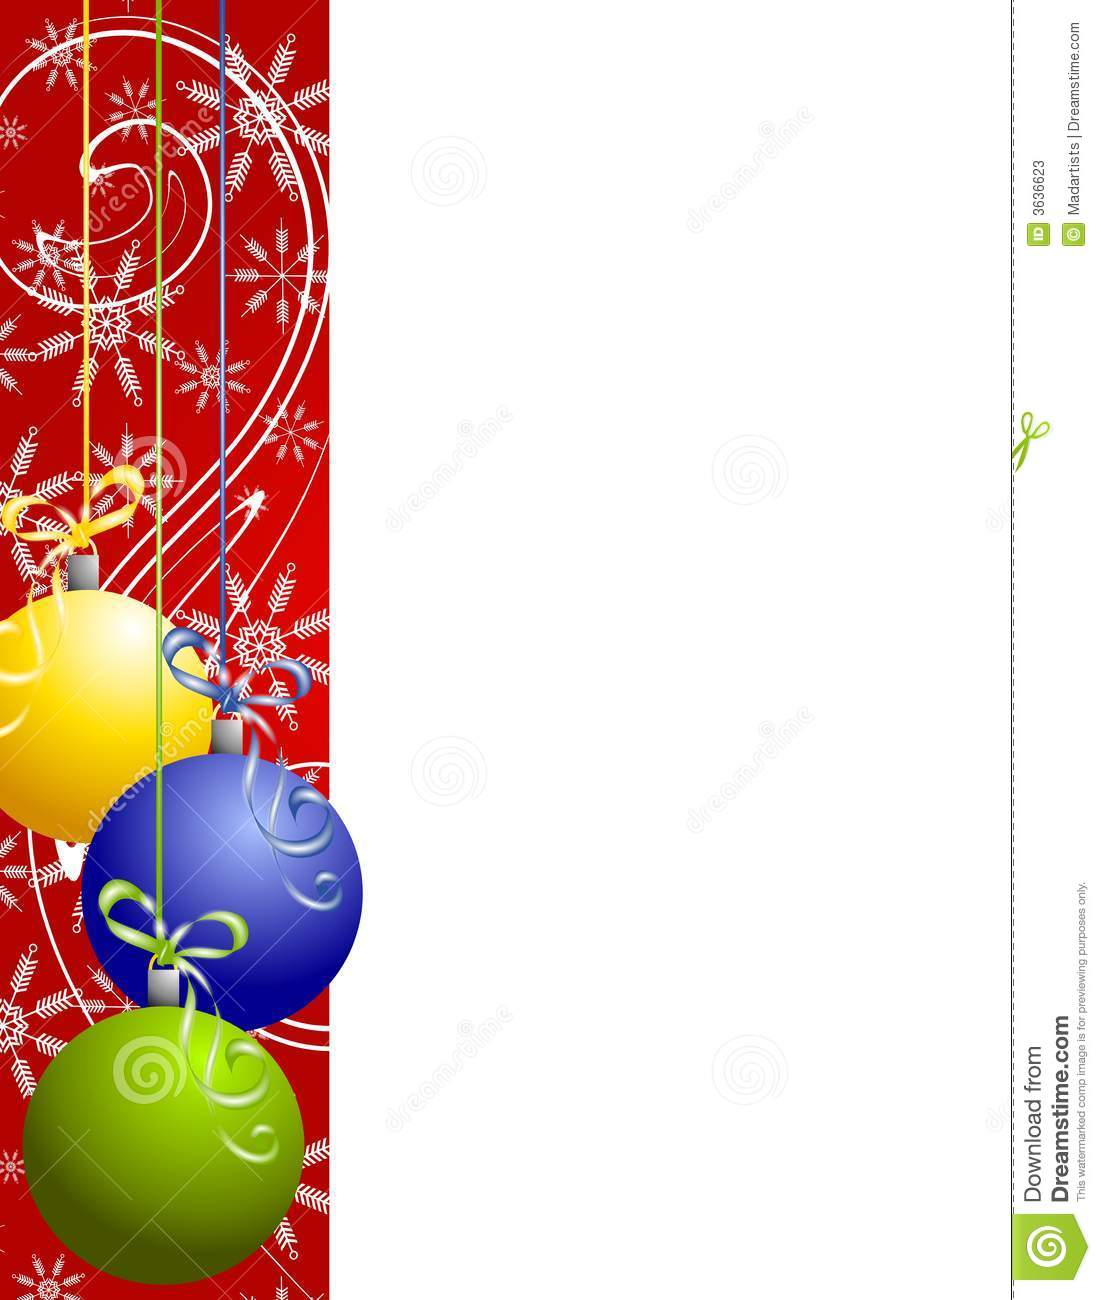 Red christmas ornaments border stock illustration image